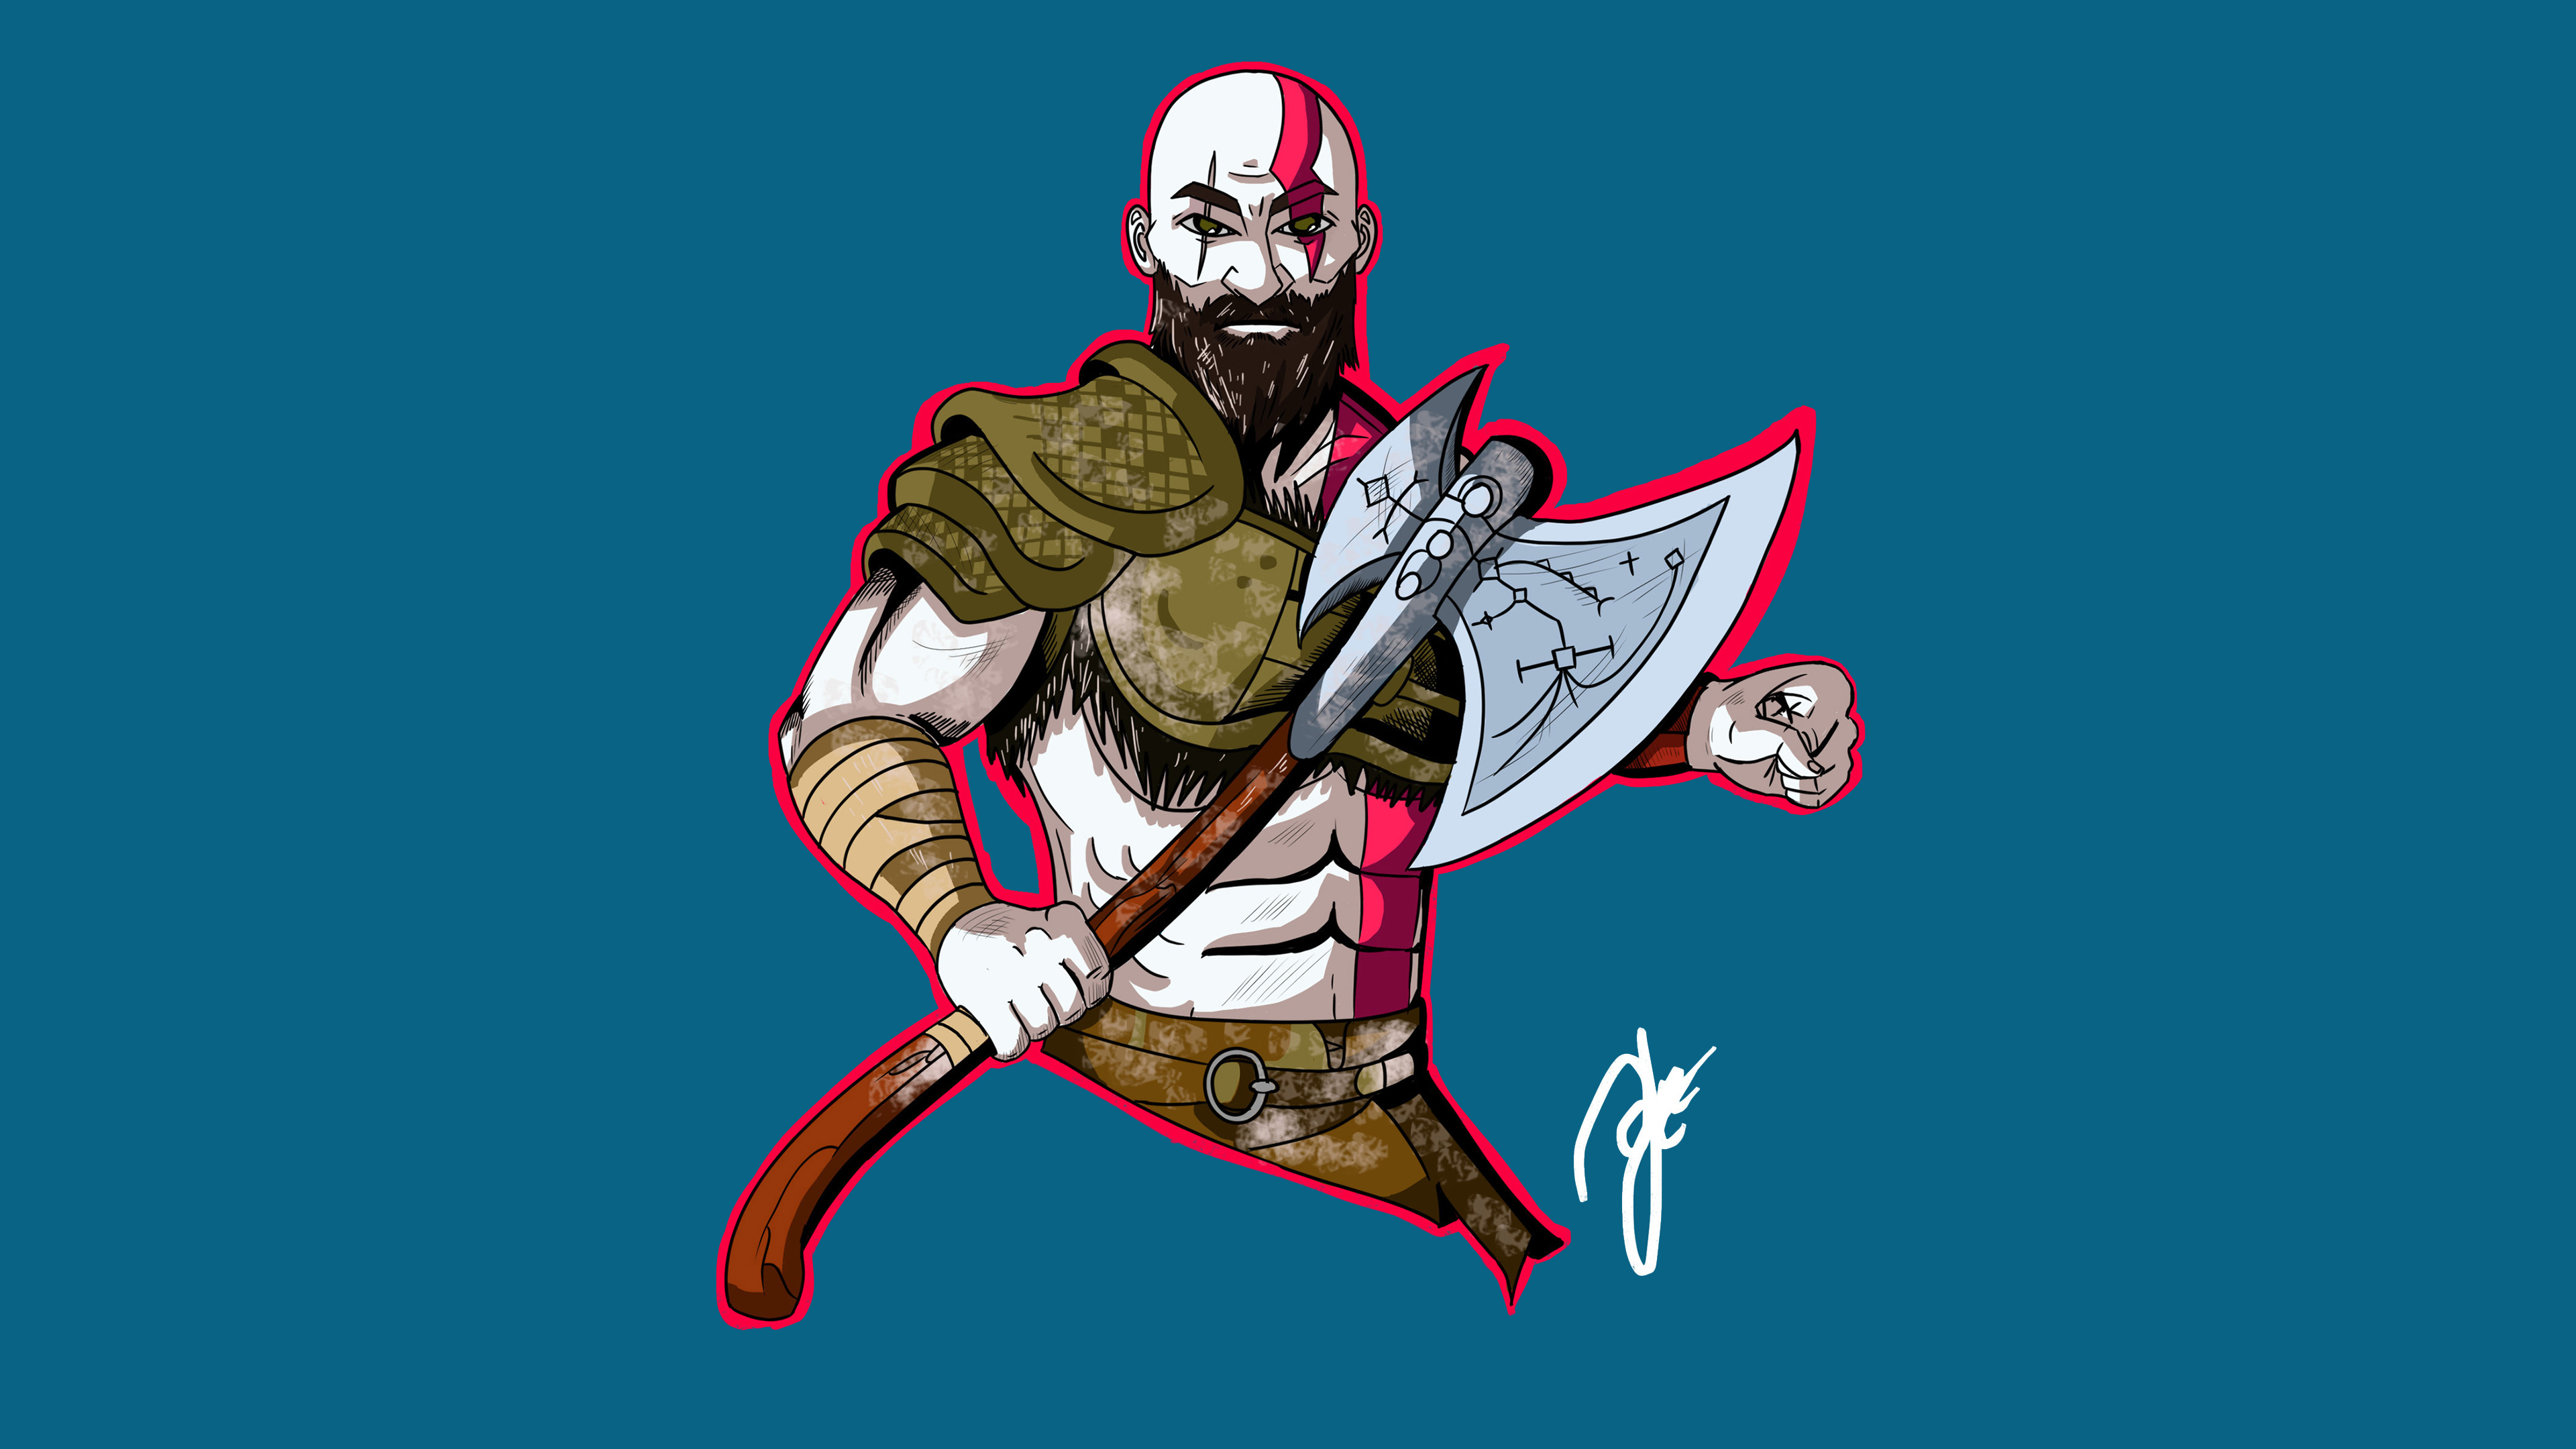 Kratos god of war artwork 4k hd games 4k wallpapers - 4k wallpaper of god ...